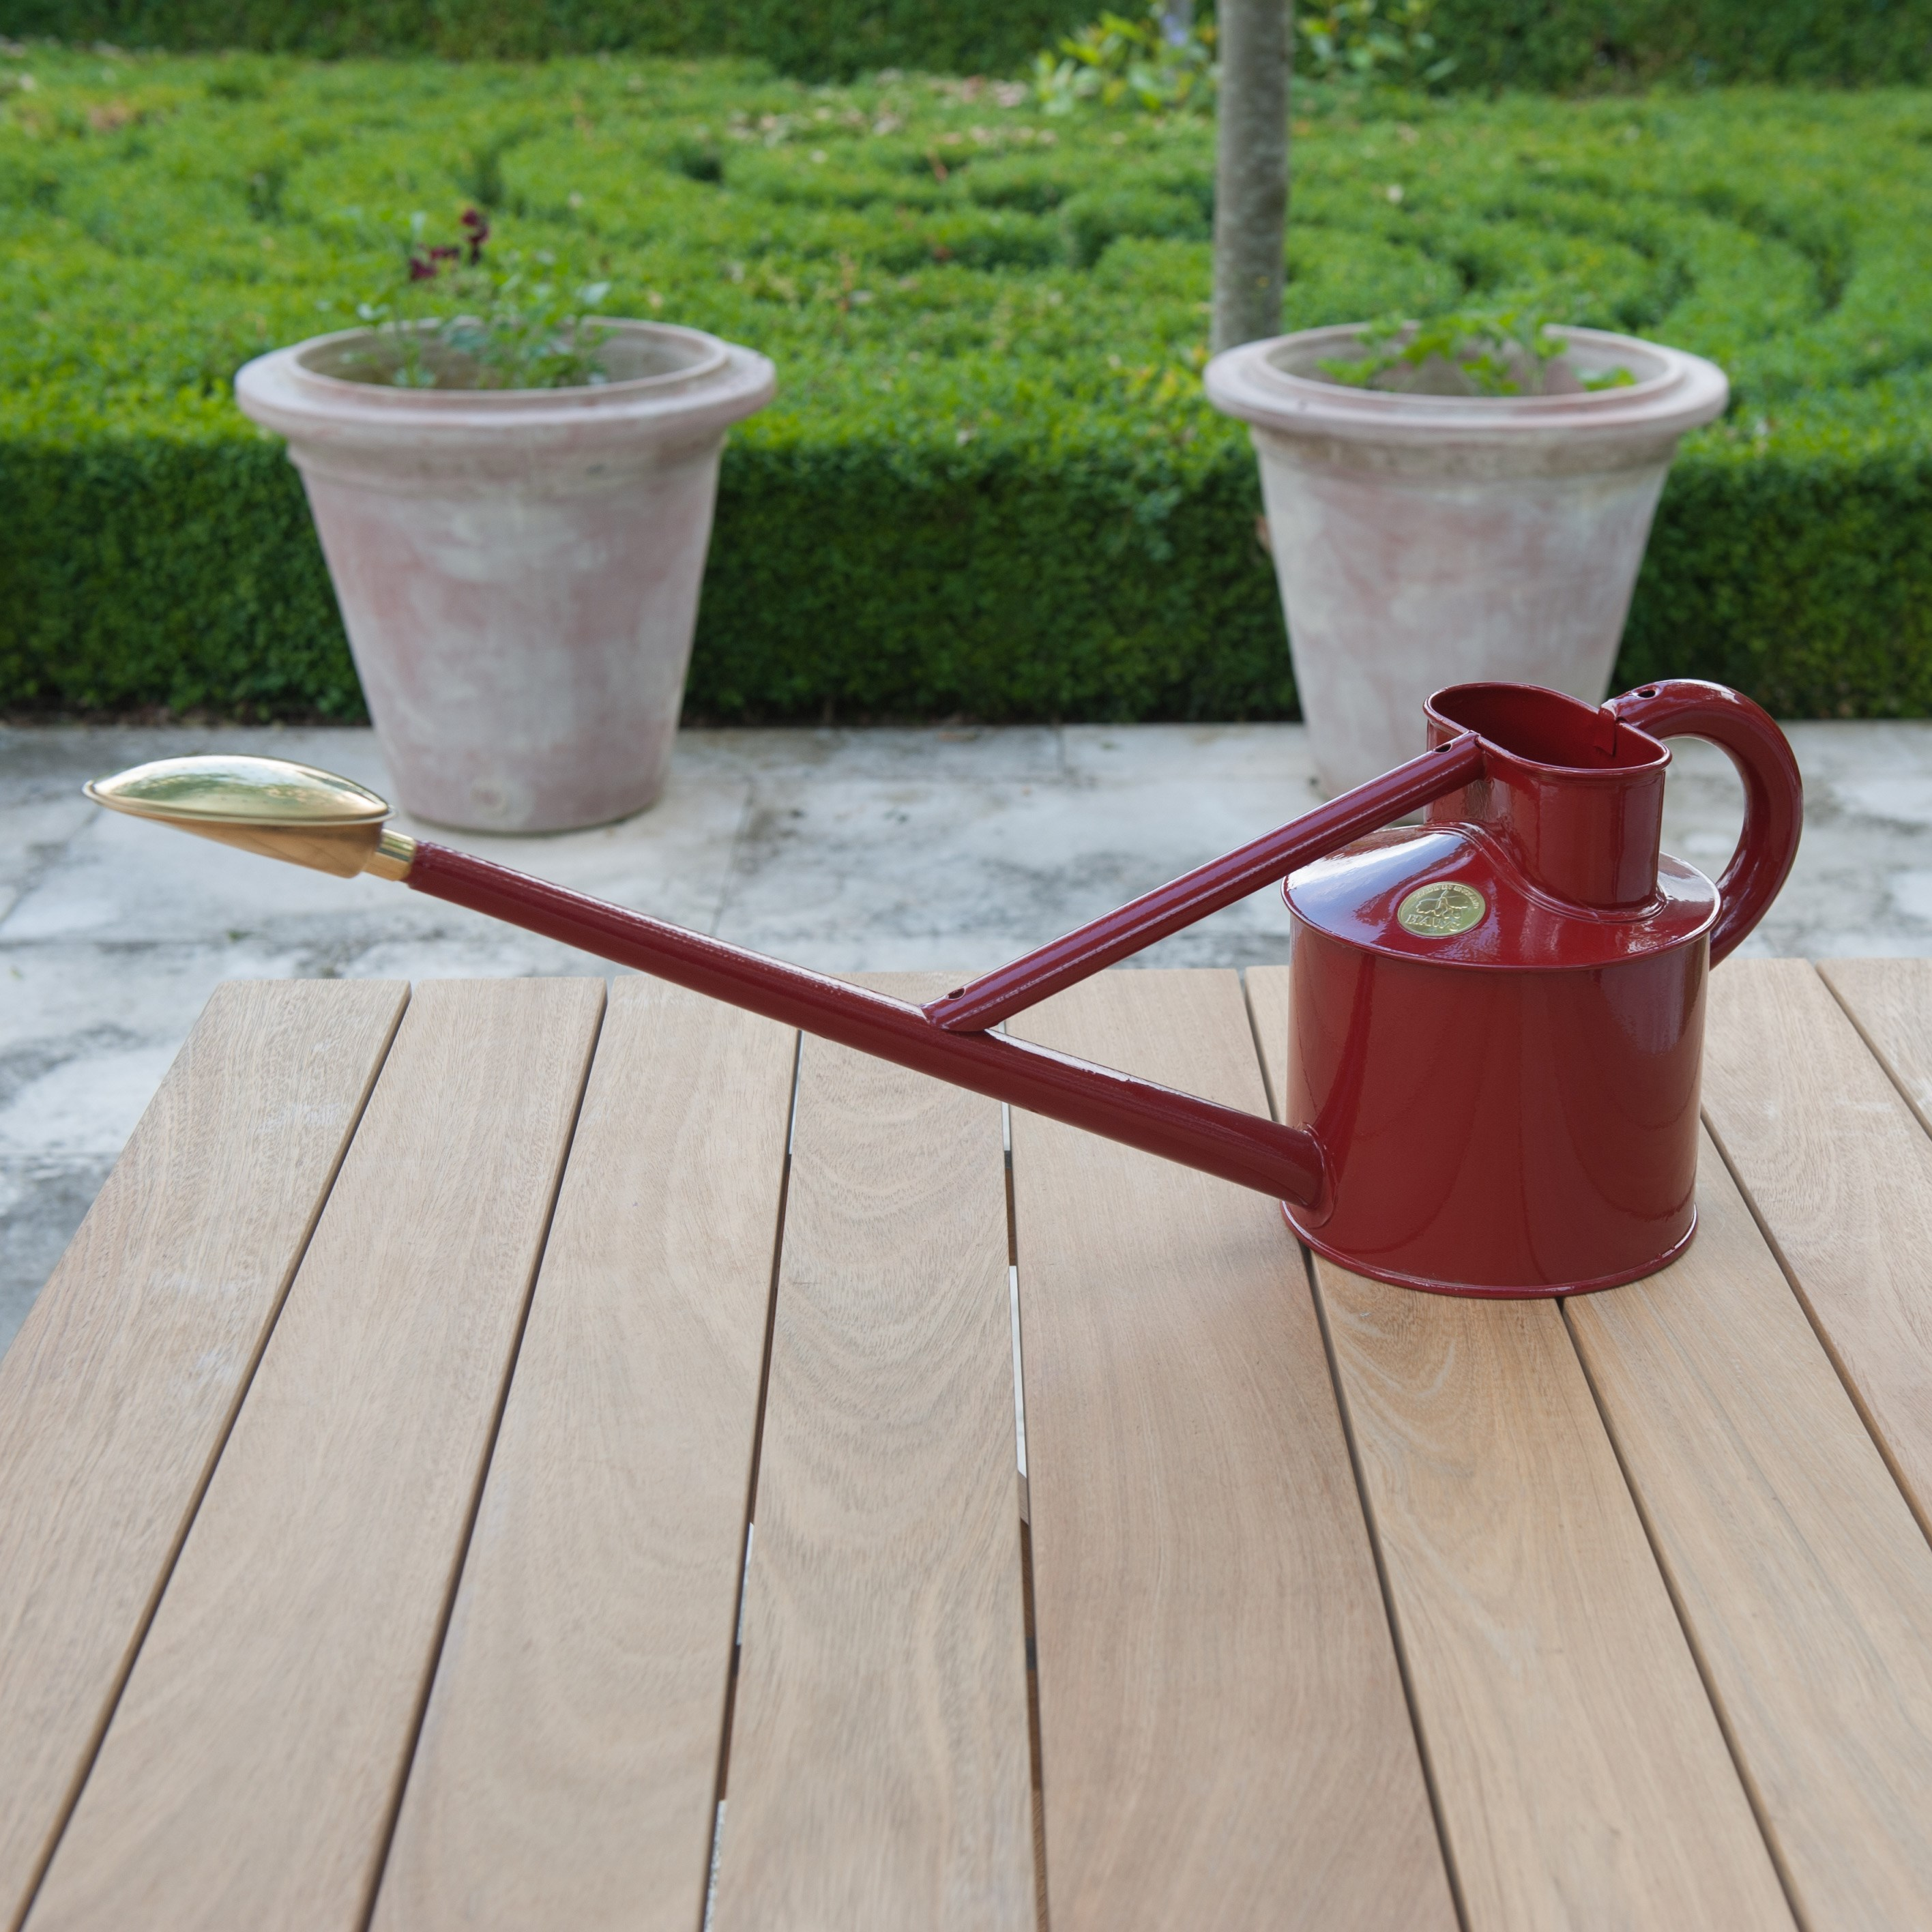 Haws professional longreach watering Can